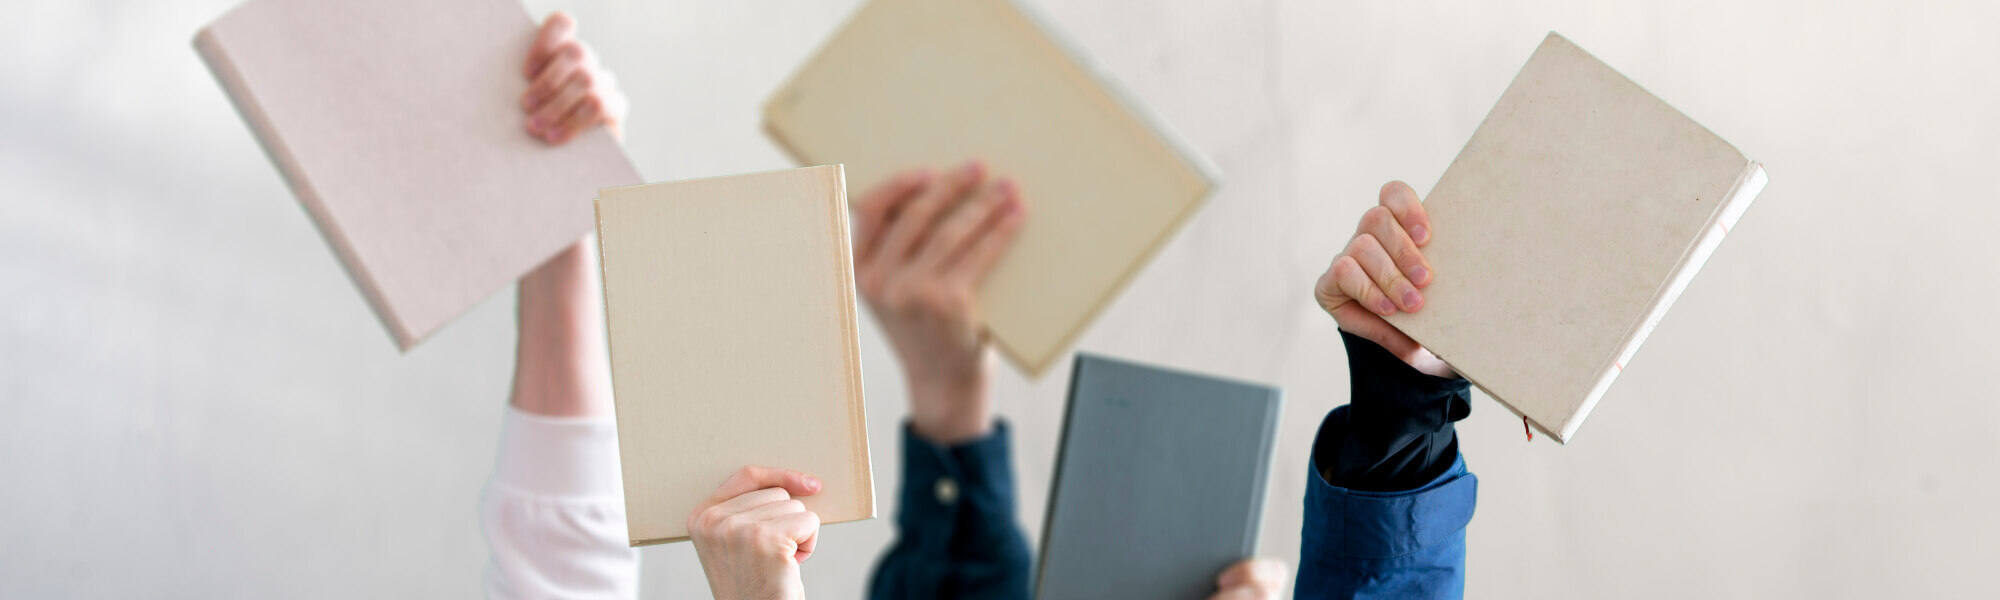 The 3 most popular booklet binding options: